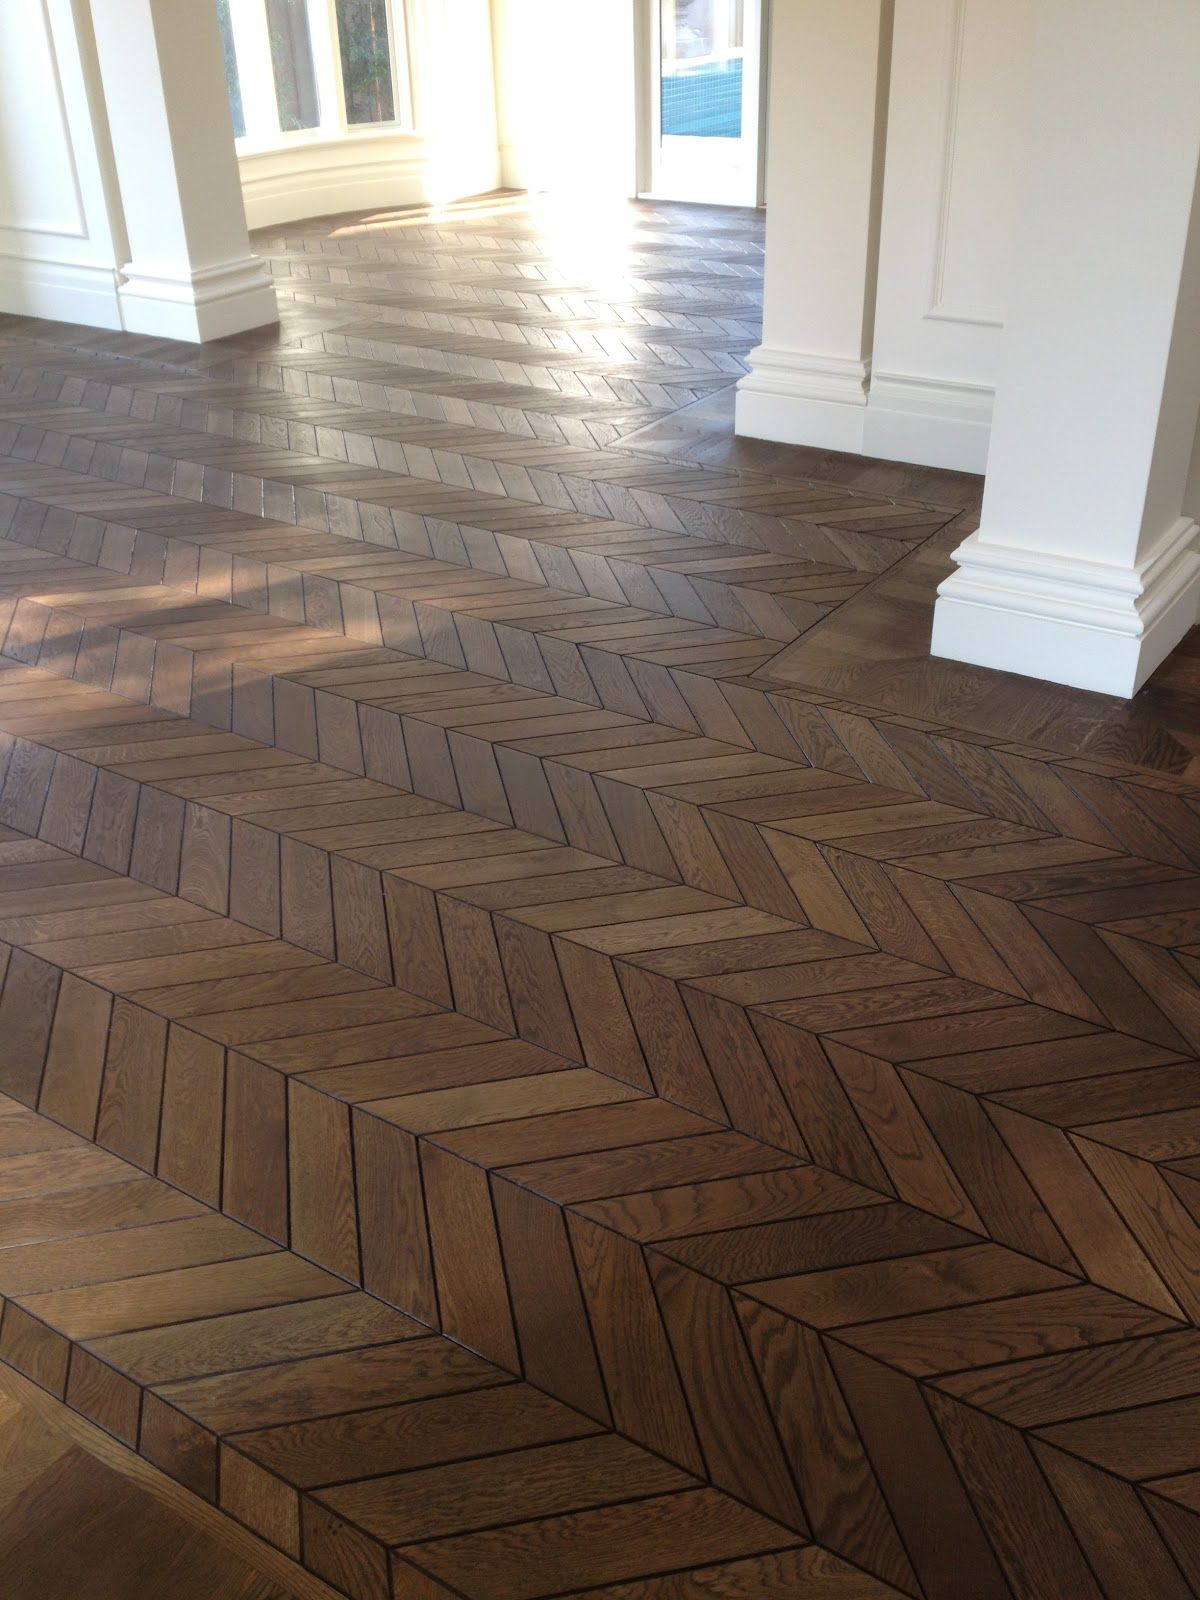 Diy peel n stick flooring herringbone pattern google search a walk to the bathroom is a pleasant experience thanks to an addtional green rooftop to look upon along the way the salvaged wood floors an dailygadgetfo Gallery